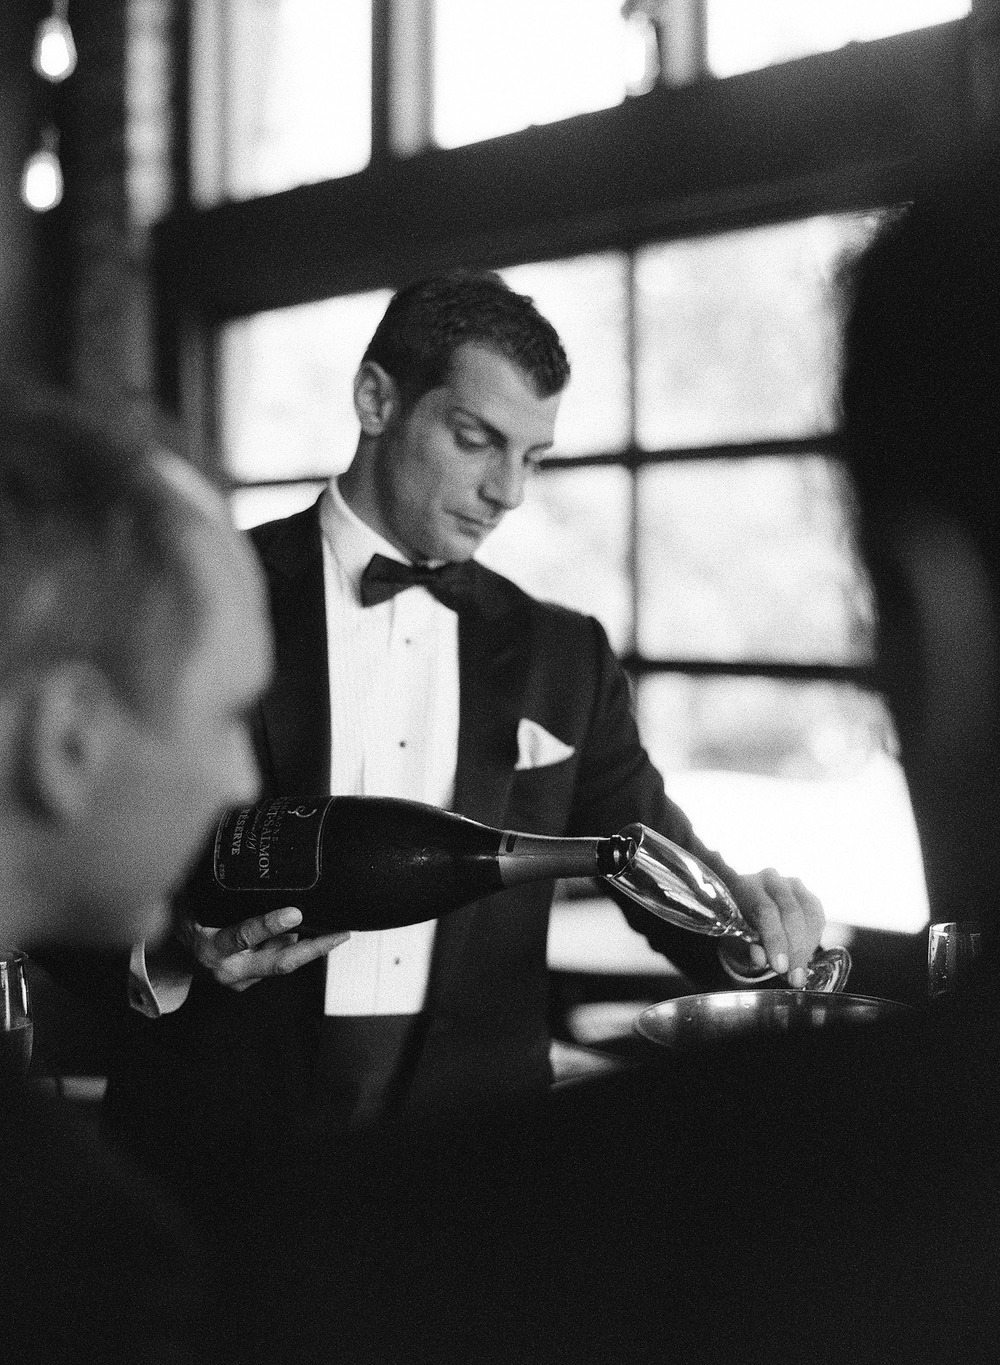 groom pours a glass of champagne for the groomsmen before his ceremony at the Italian villa named Villa Terrace where Destination wedding photographer Lexia Frank photographs this Italian destination Wedding entirely on film